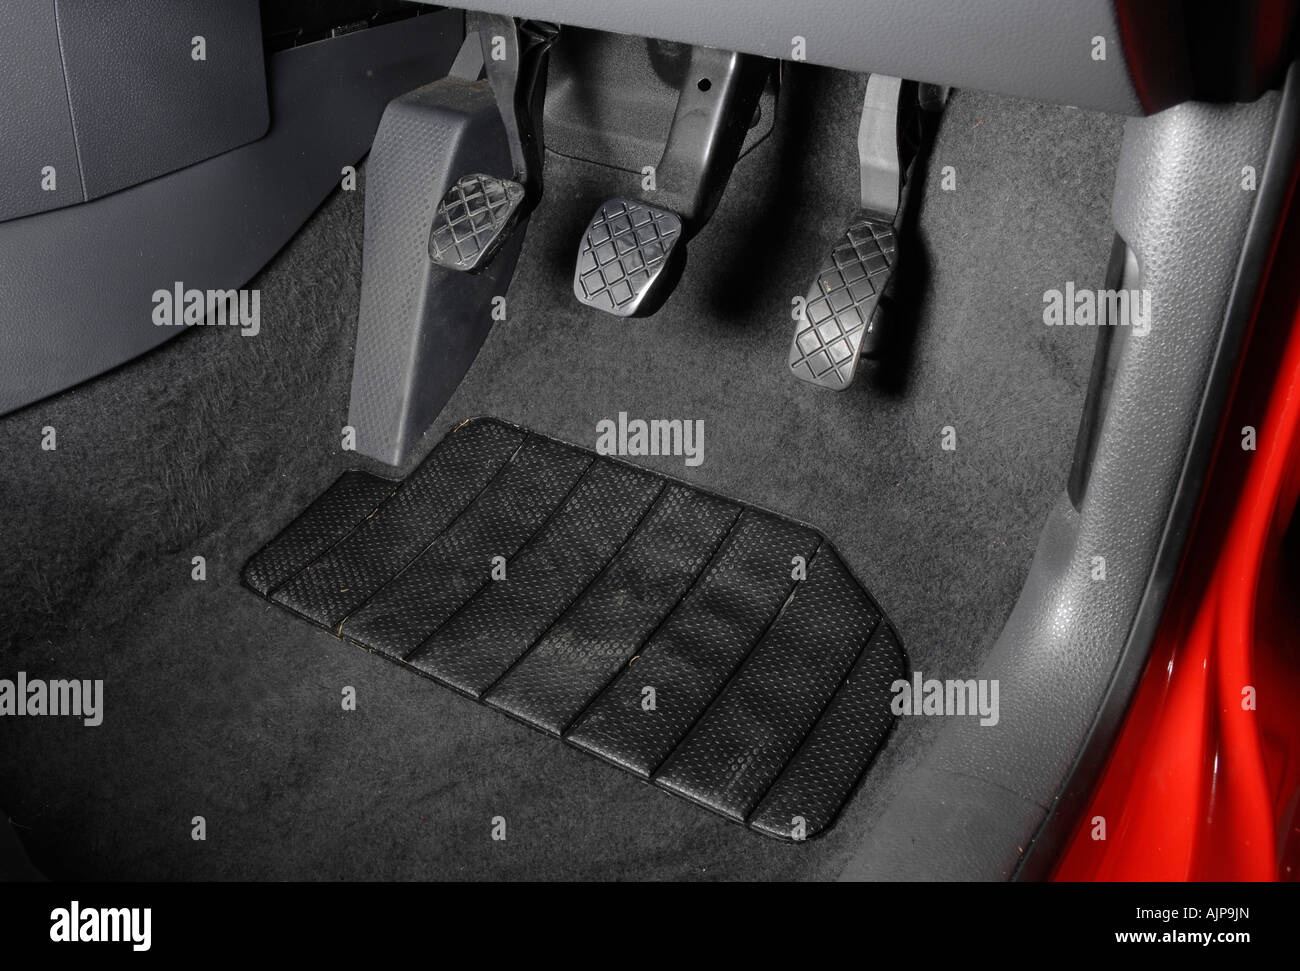 2003 volkswagen polo sdi foot pedals stock photo royalty free image 14786348 alamy. Black Bedroom Furniture Sets. Home Design Ideas